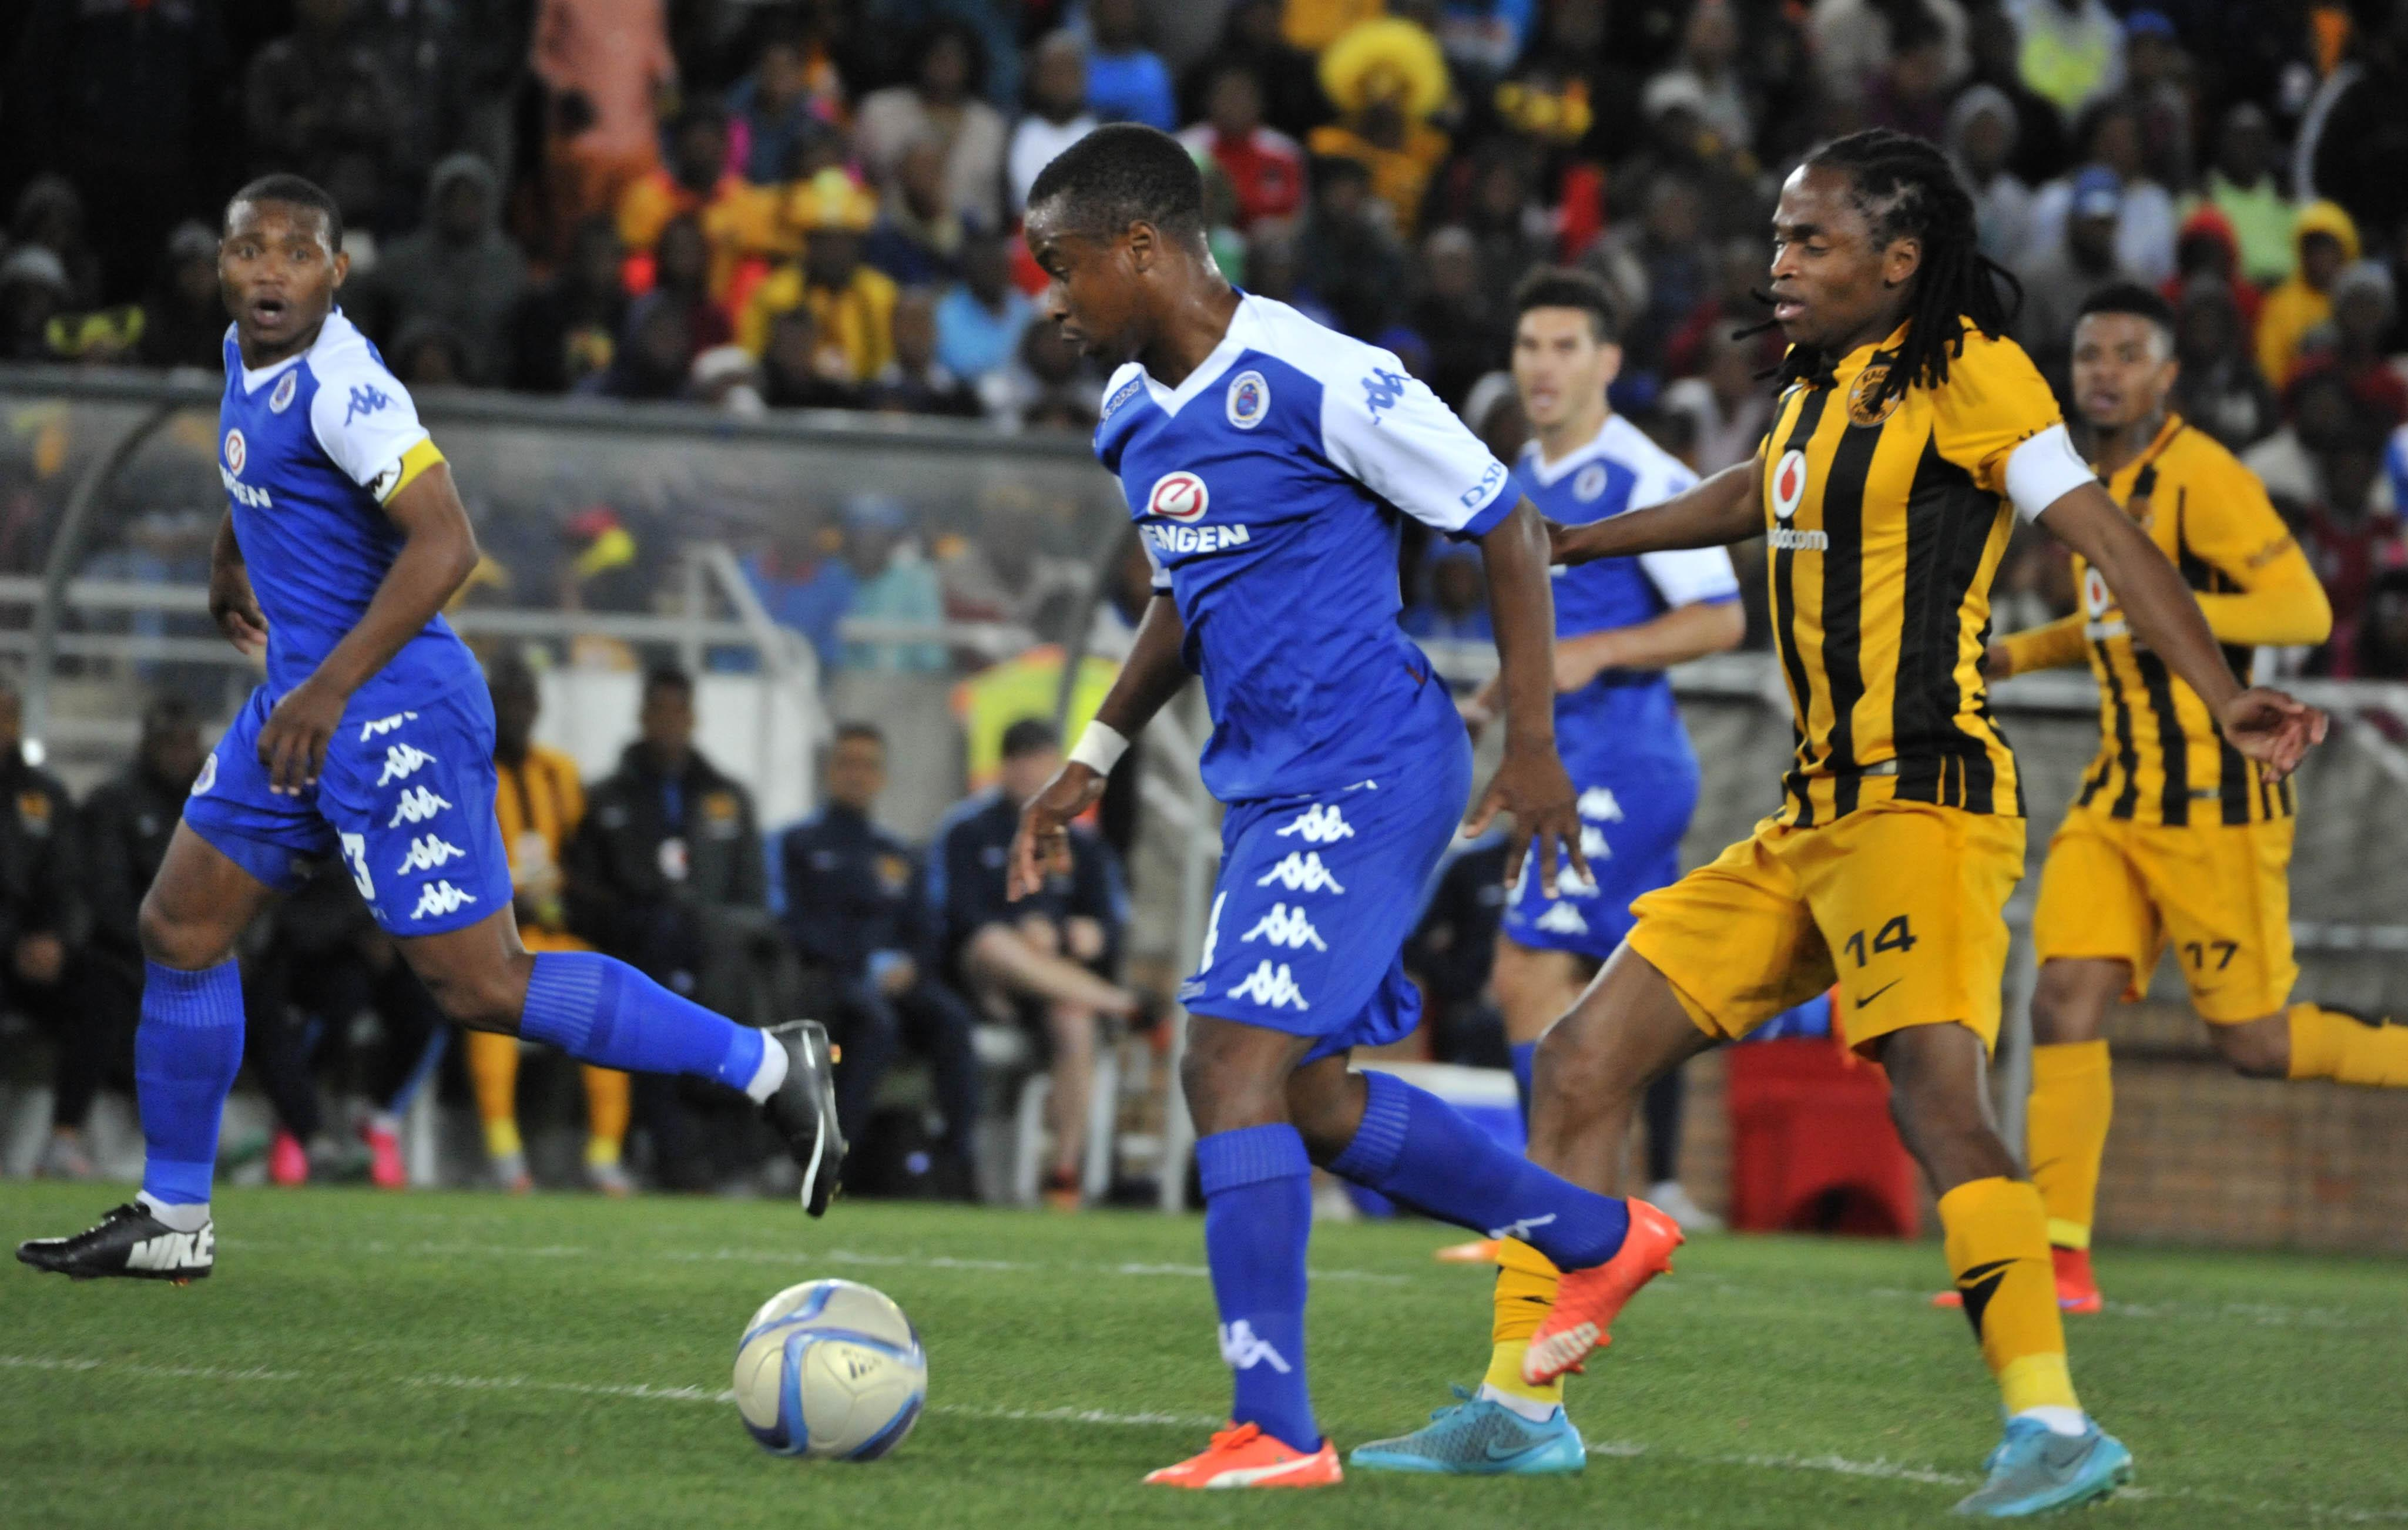 Image Result For Kaizer Chiefs Home Games